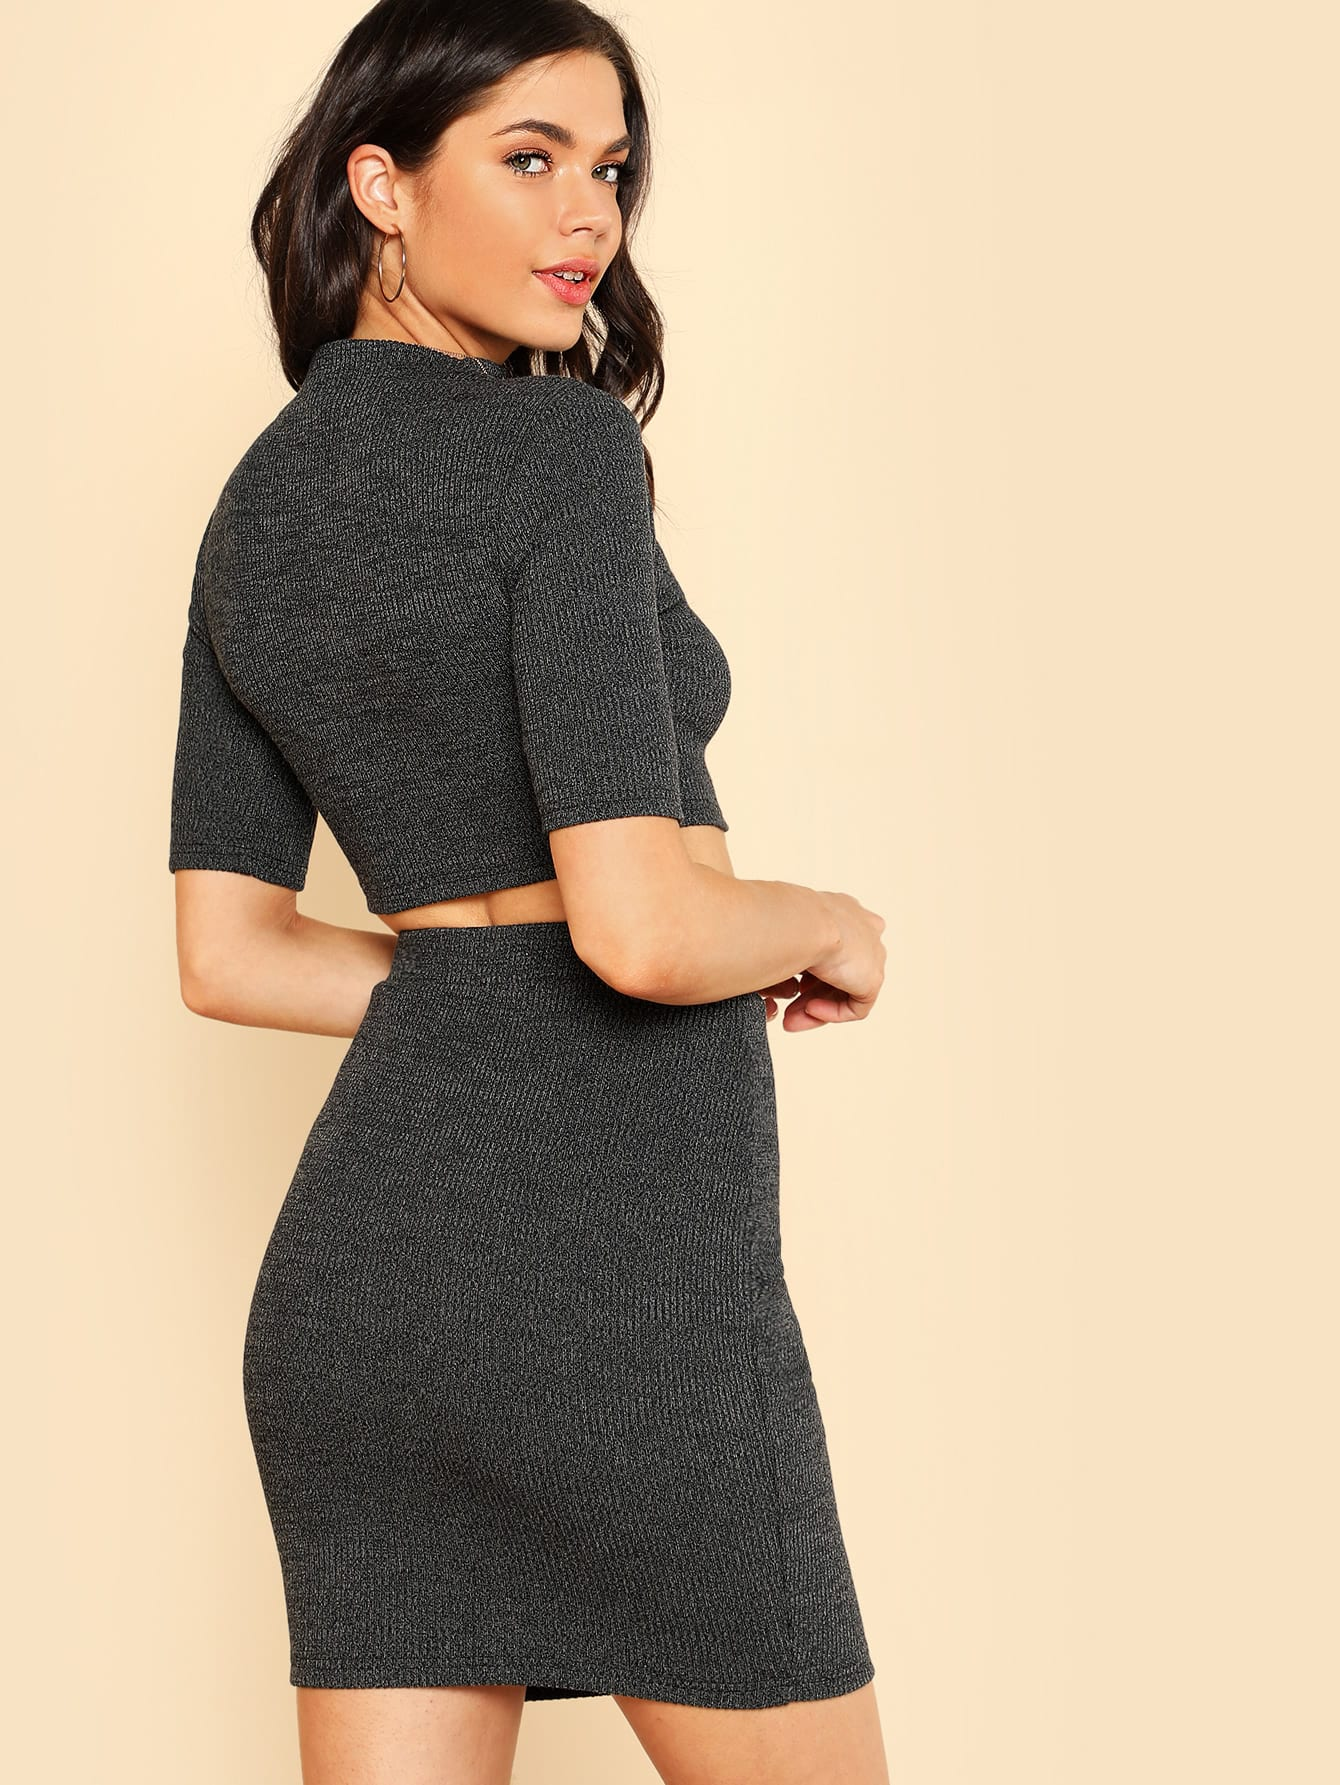 Heather Knit Crop Top & Pencil Skirt Co-Ord marled knit crop top with split skirt